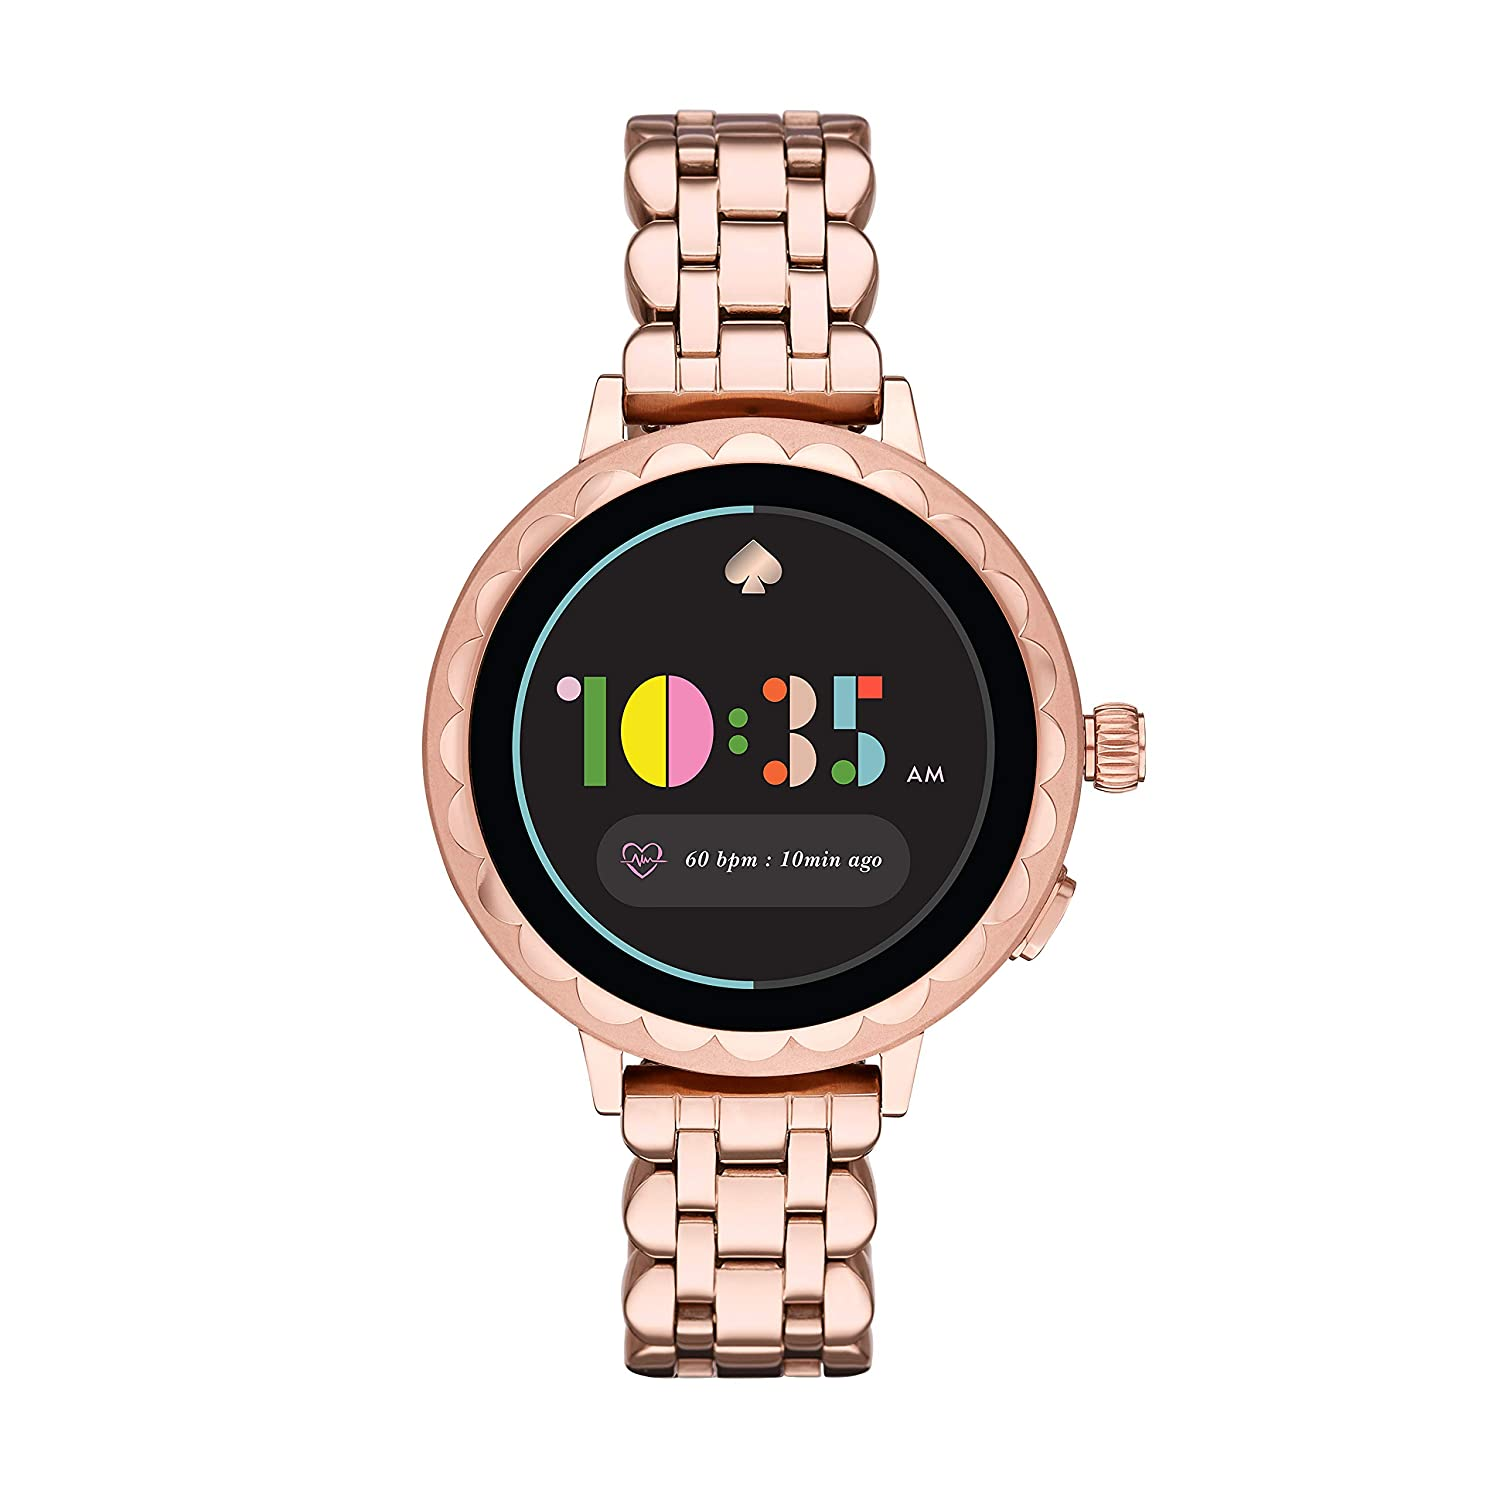 Kate Spade New York Women's Scallop 2 Stainless Steel Touchscreen smartwatch Watch with Bracelet Strap, Rose Gold, 16 (Model: KST2010